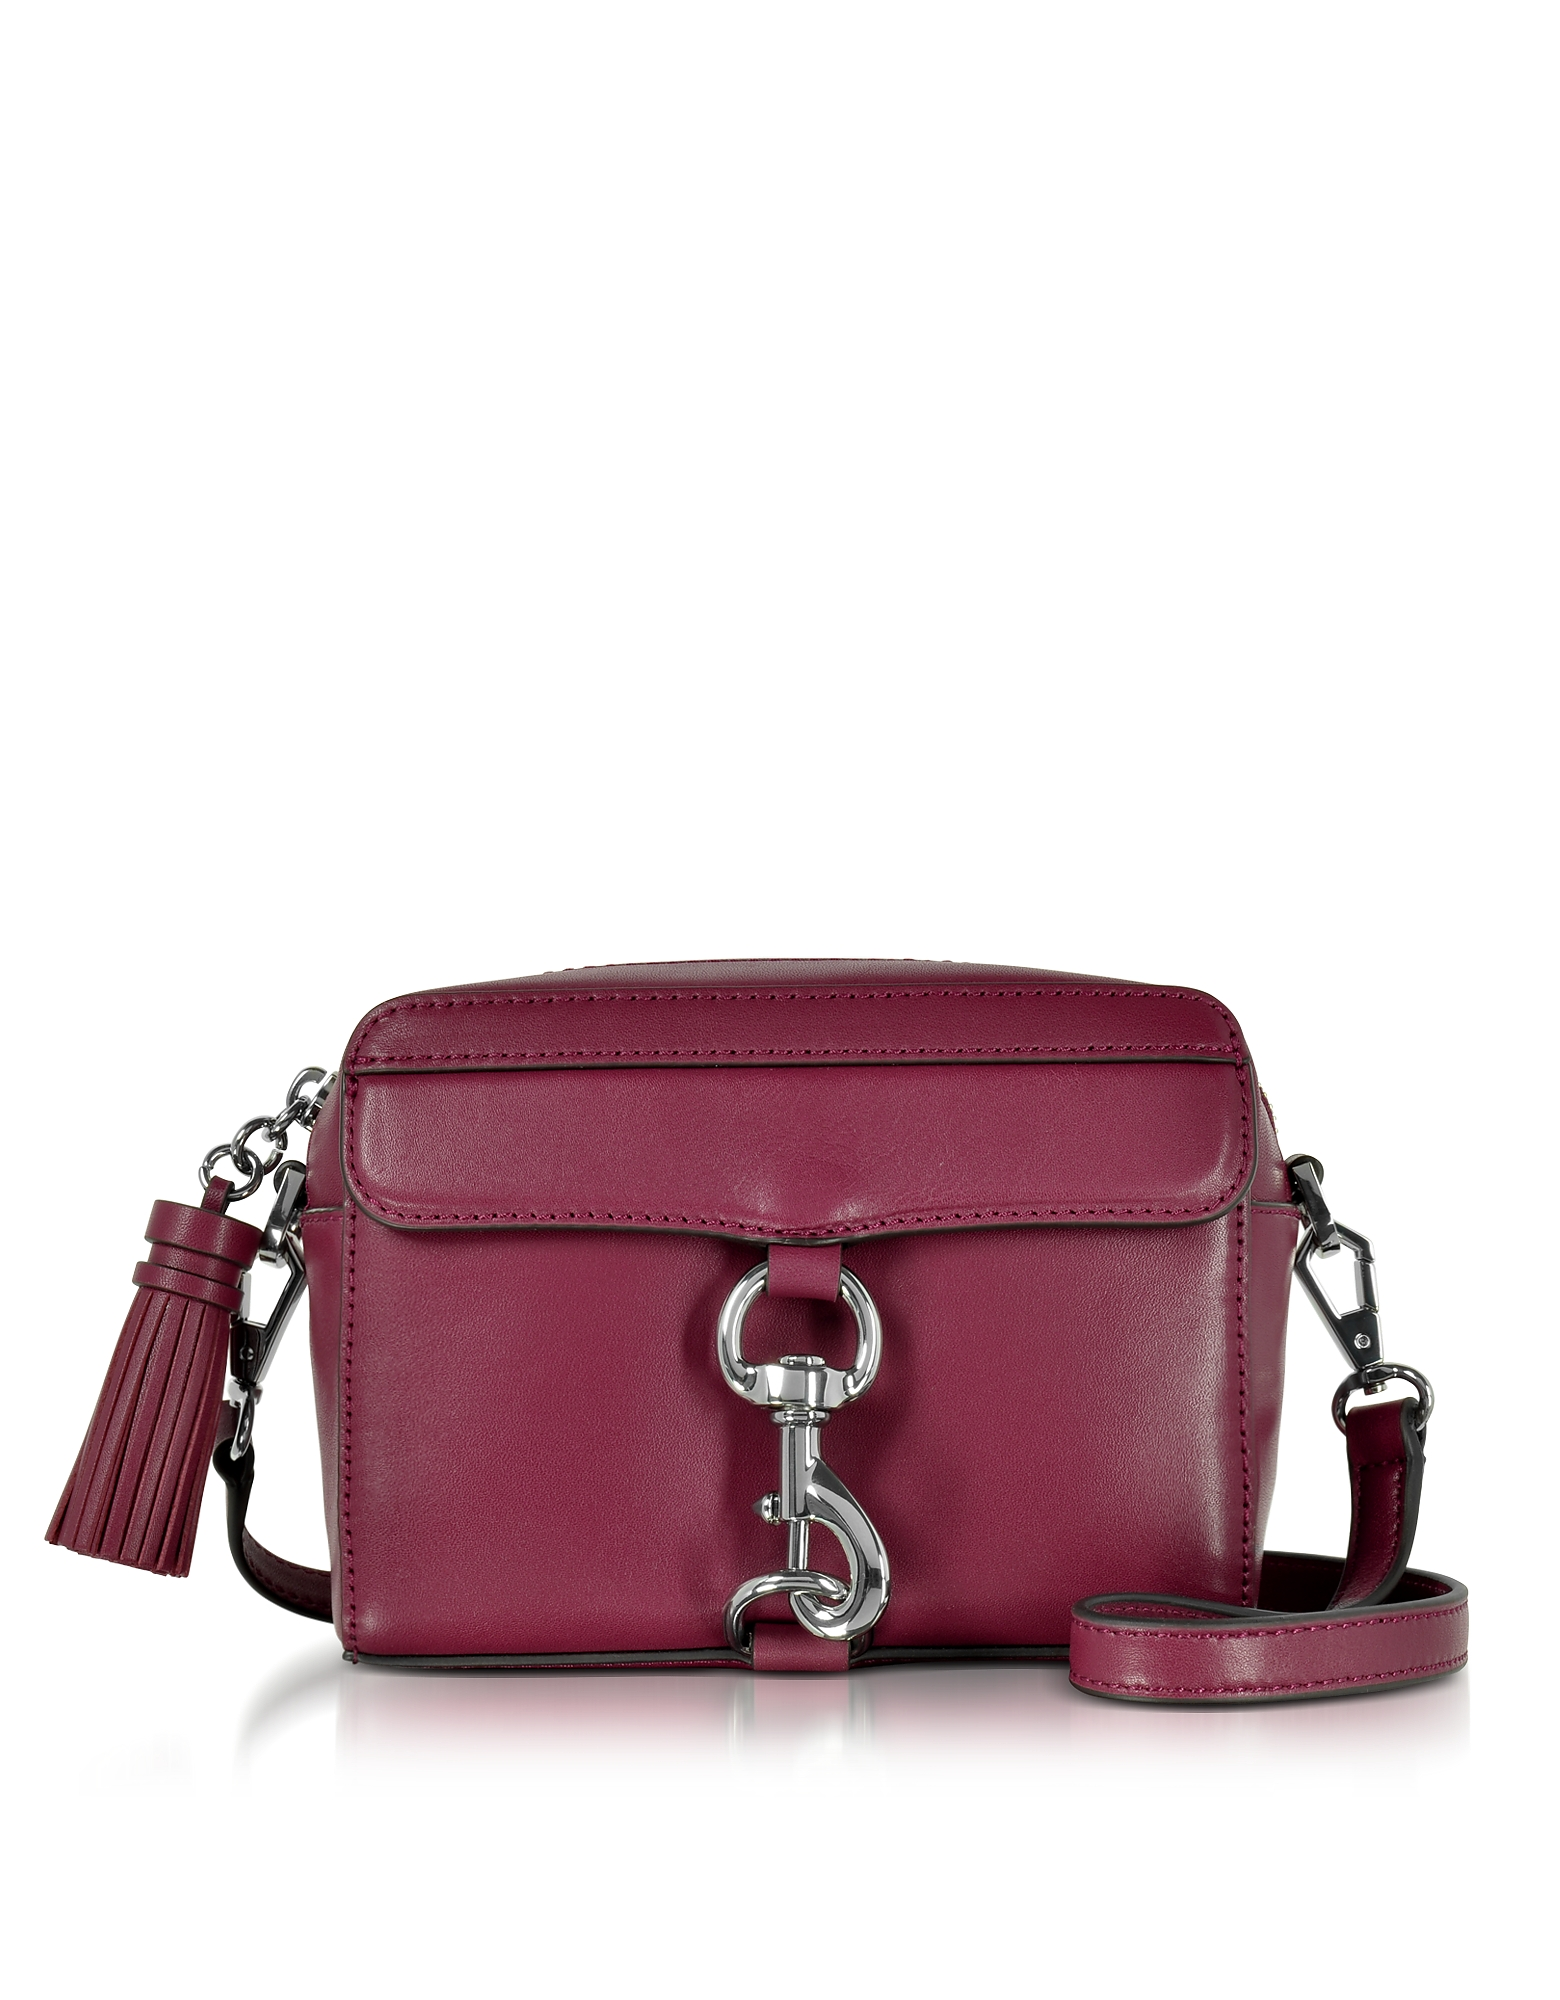 Rebecca Minkoff Handbags, M.A.B. Leather Camera Bag